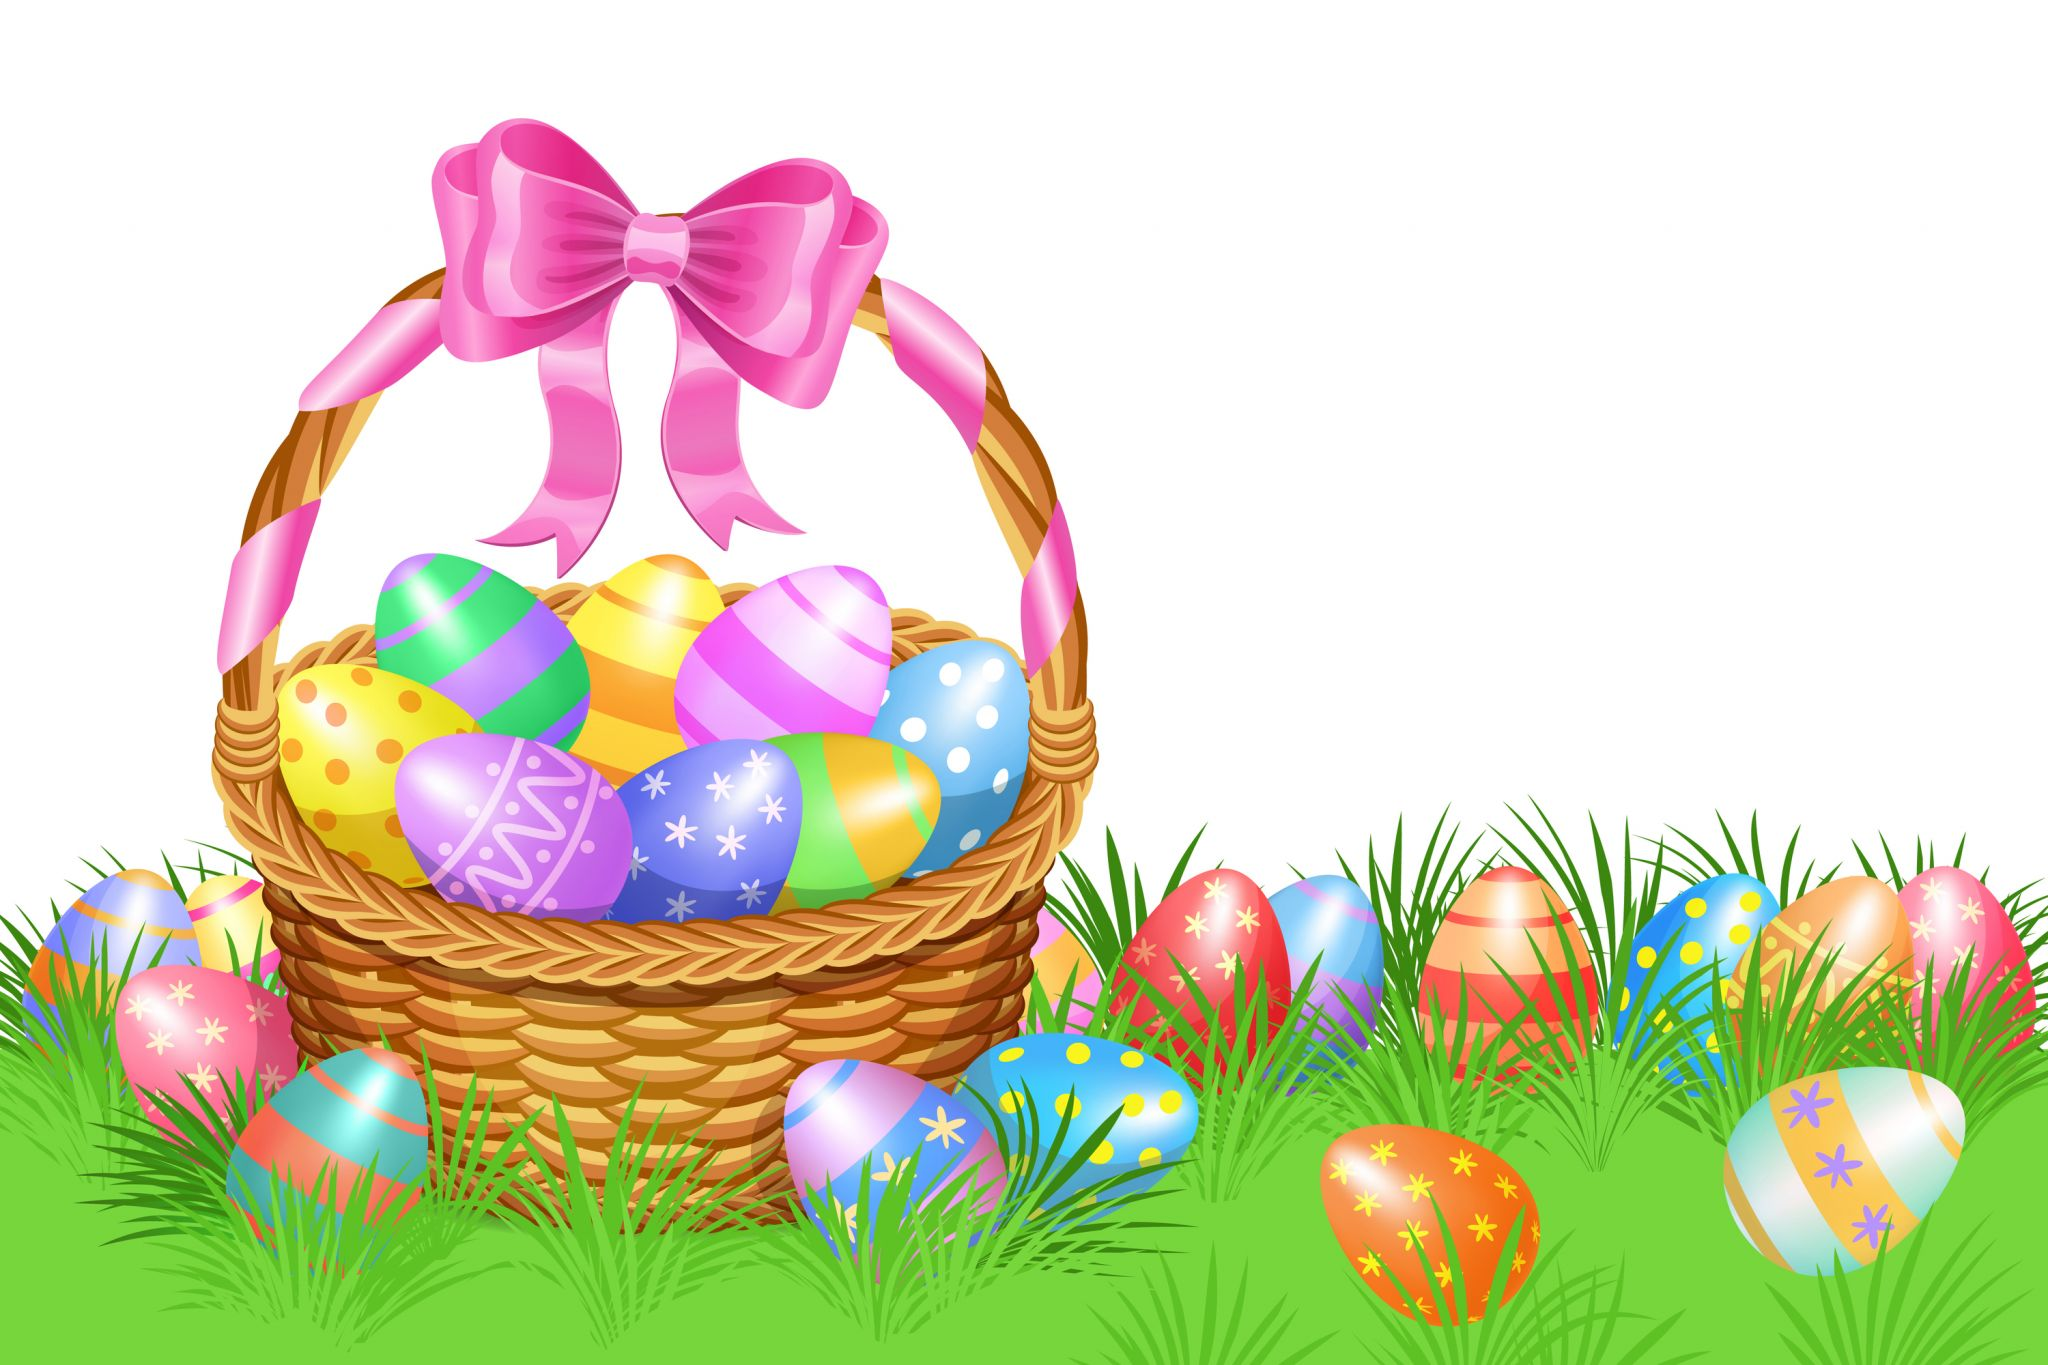 Egg citing easter egg hunts picniq blog that naughty easter bunny has hidden eggs in the grounds of this beautiful castle so bring the family along to follow the clues to see if you can find them negle Images